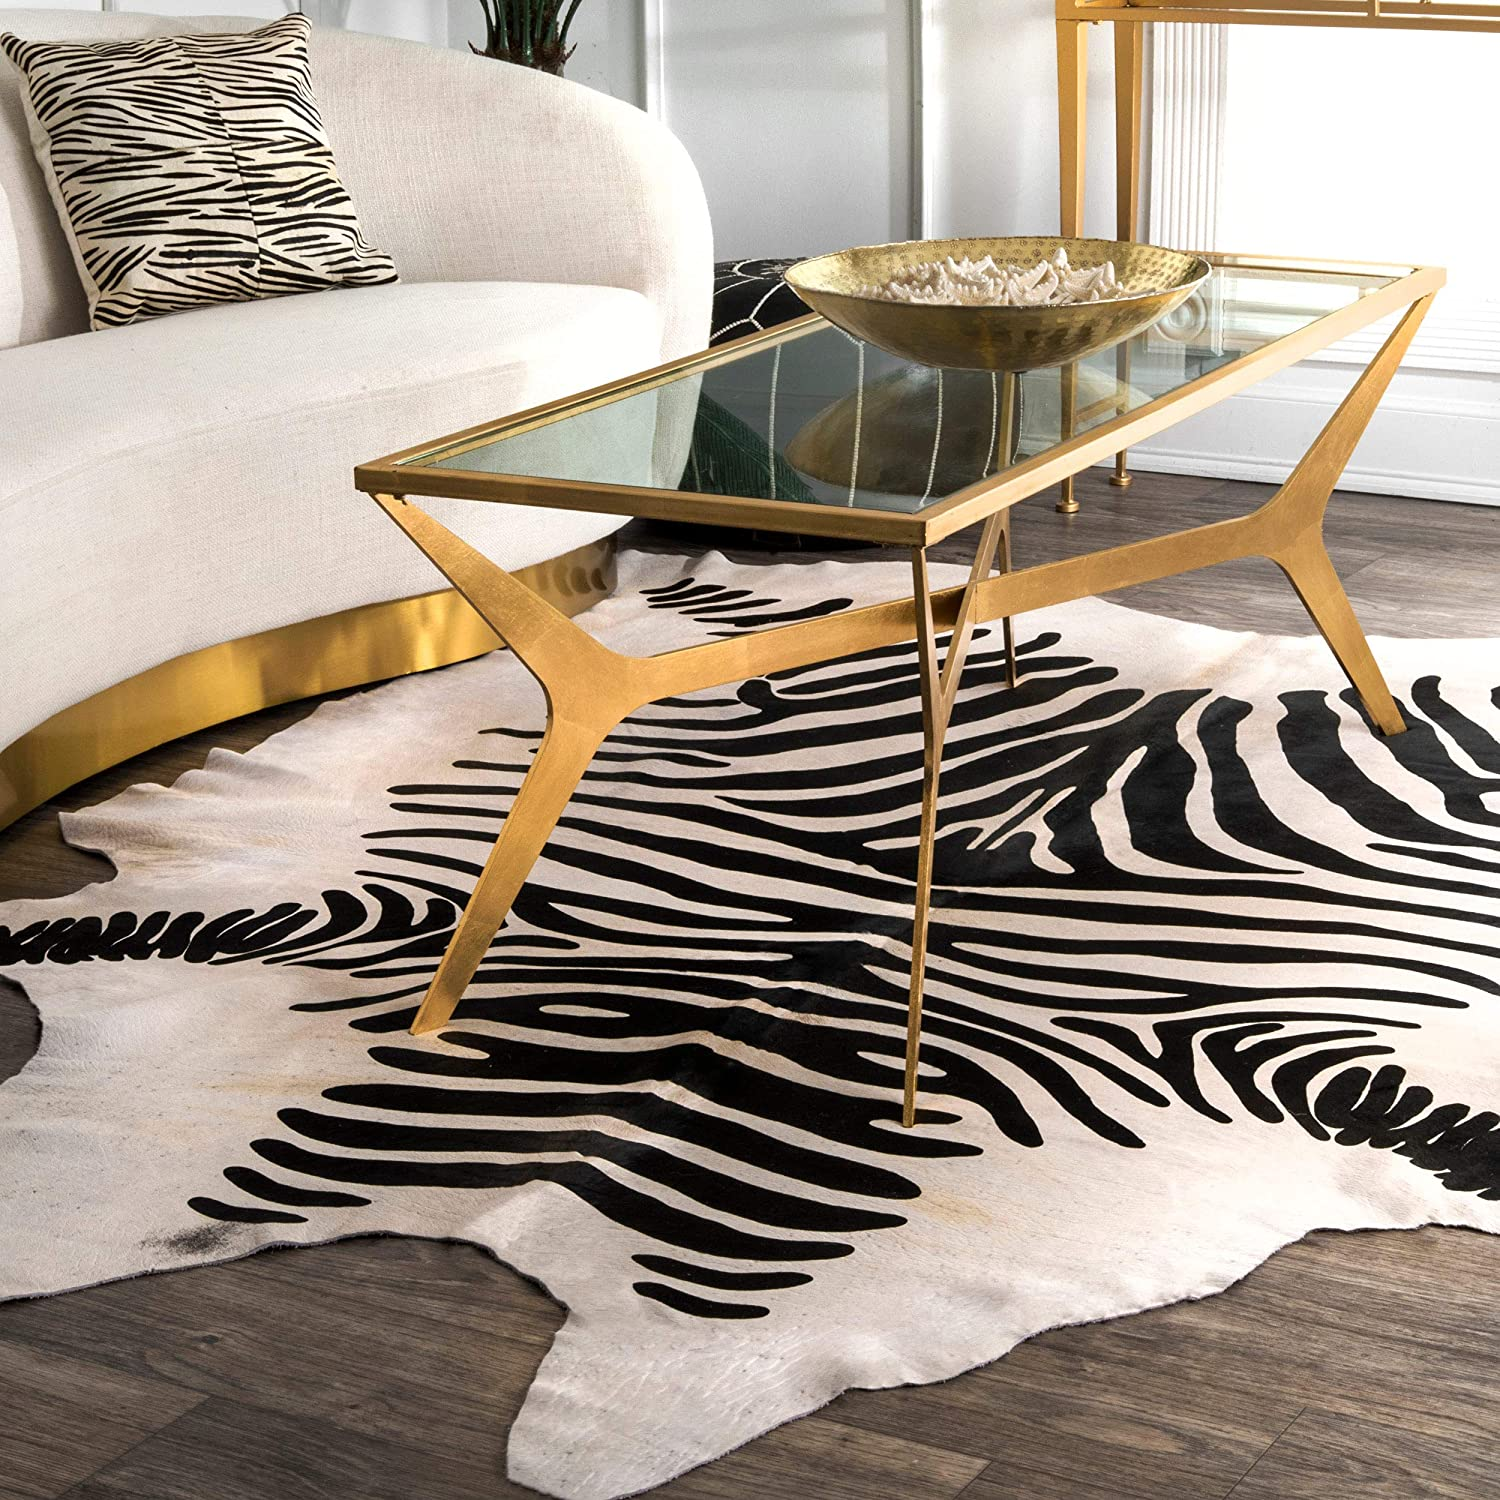 Nuloom Striped Handmade Cowhide Shaped Rug 5 X 7 White Furniture Decor